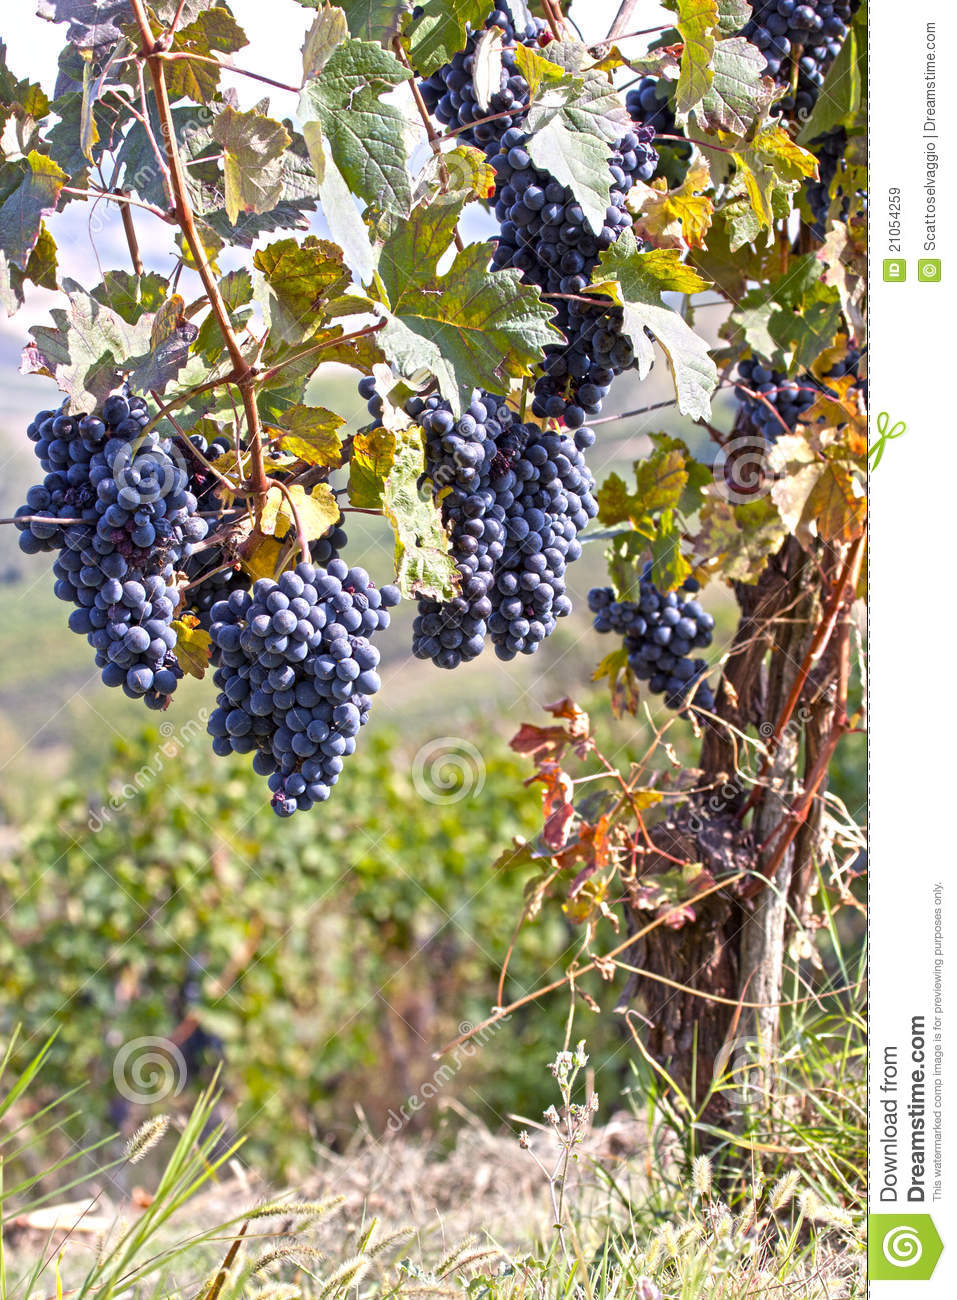 Purple wine grapes on the vine, Oltrepo Pavese, Italy.